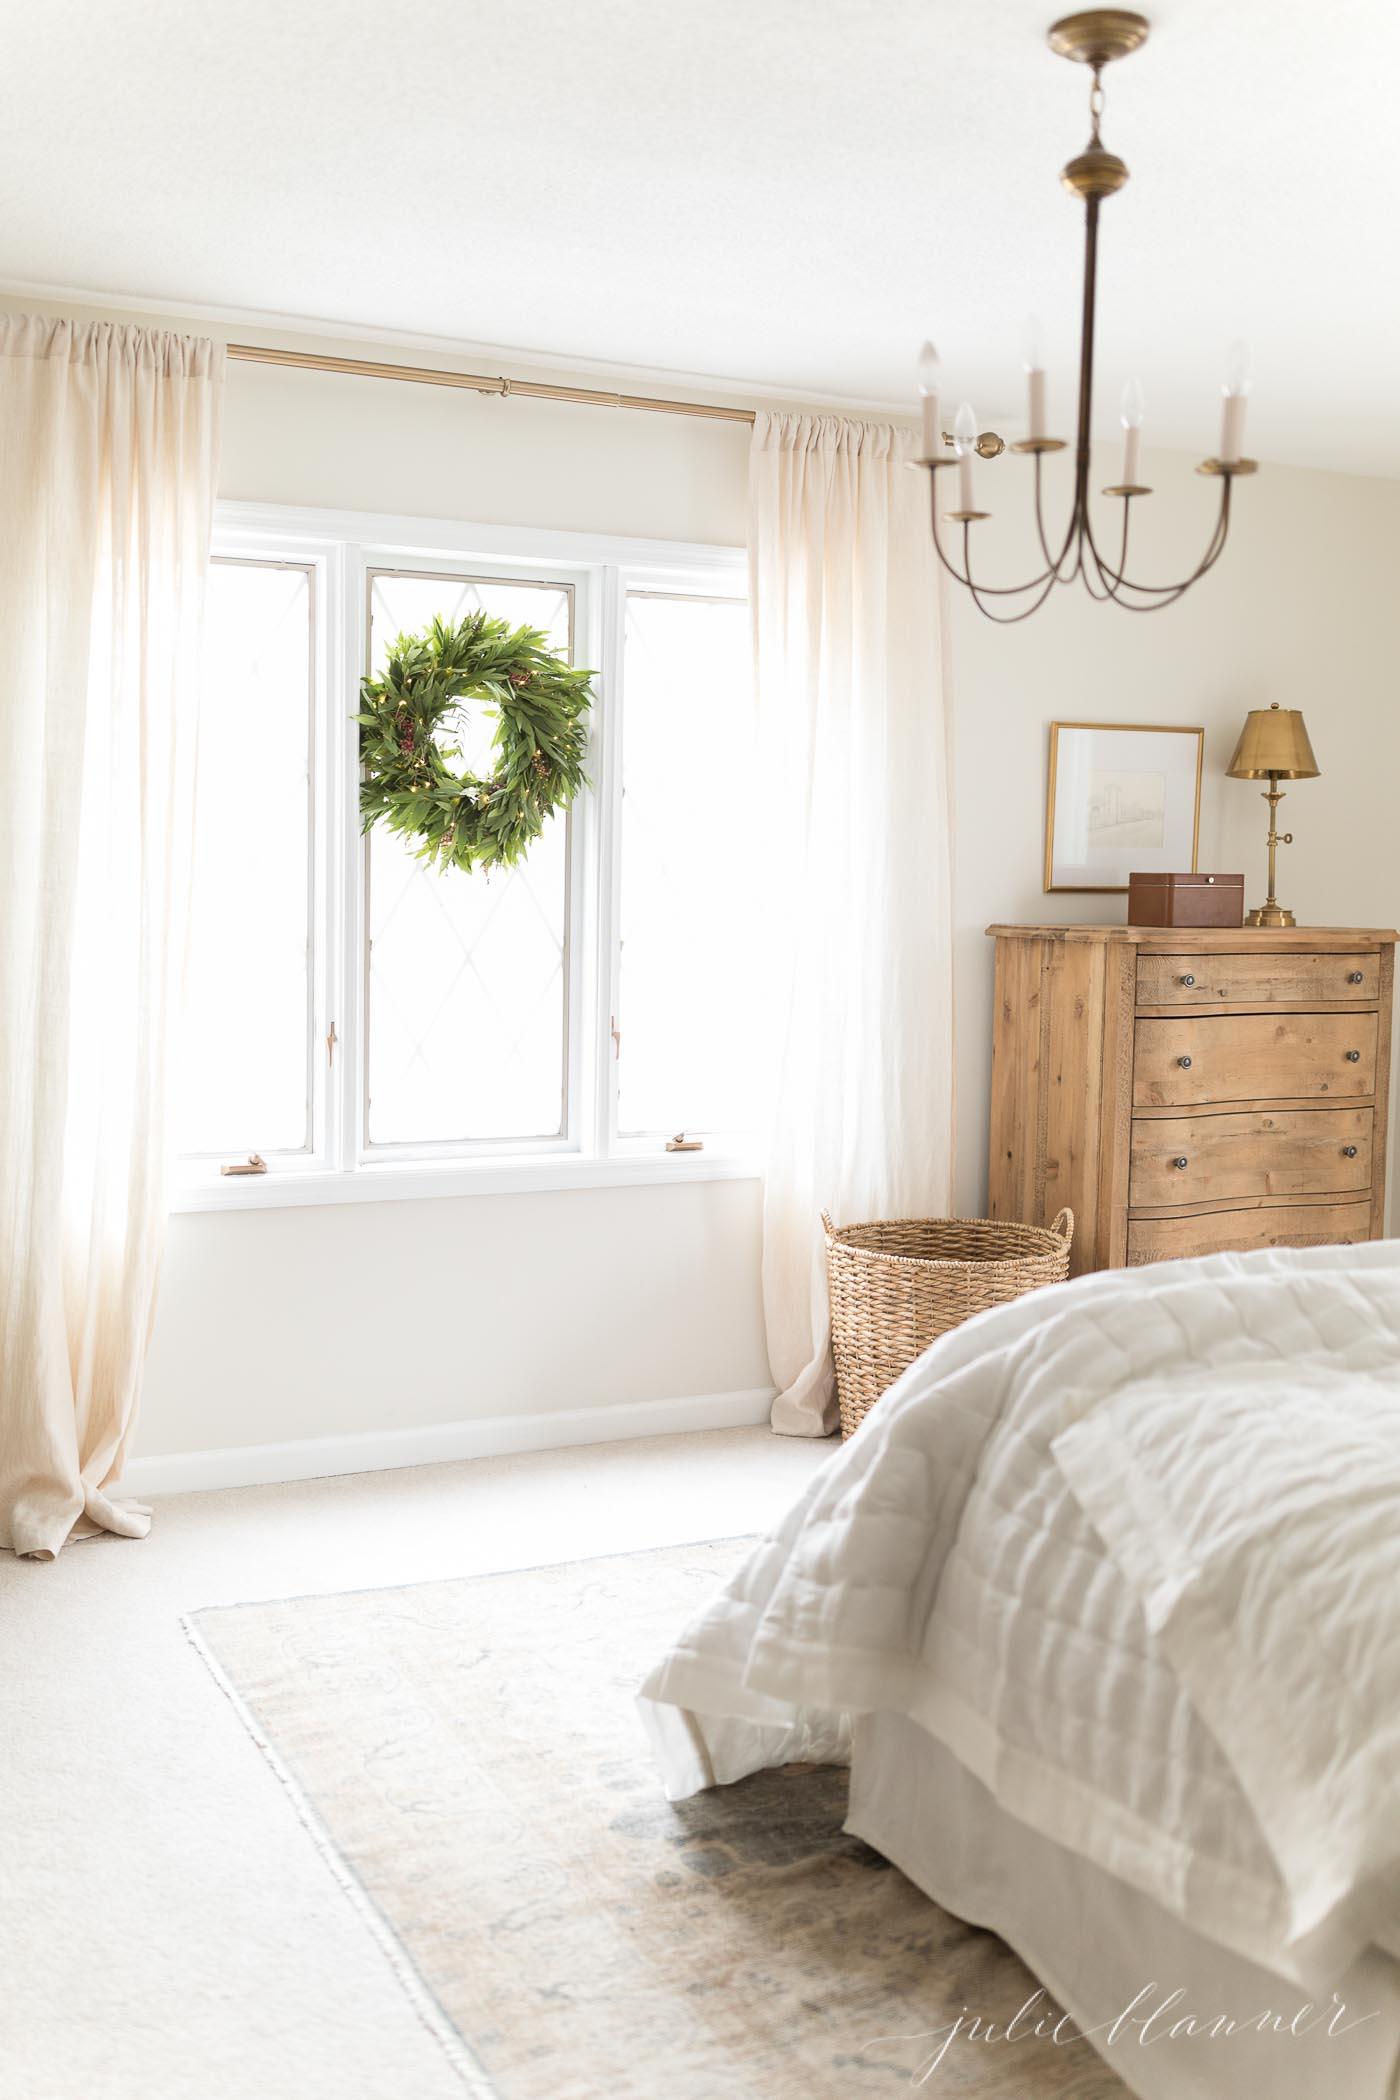 A cream colored bedroom with white trim paint.